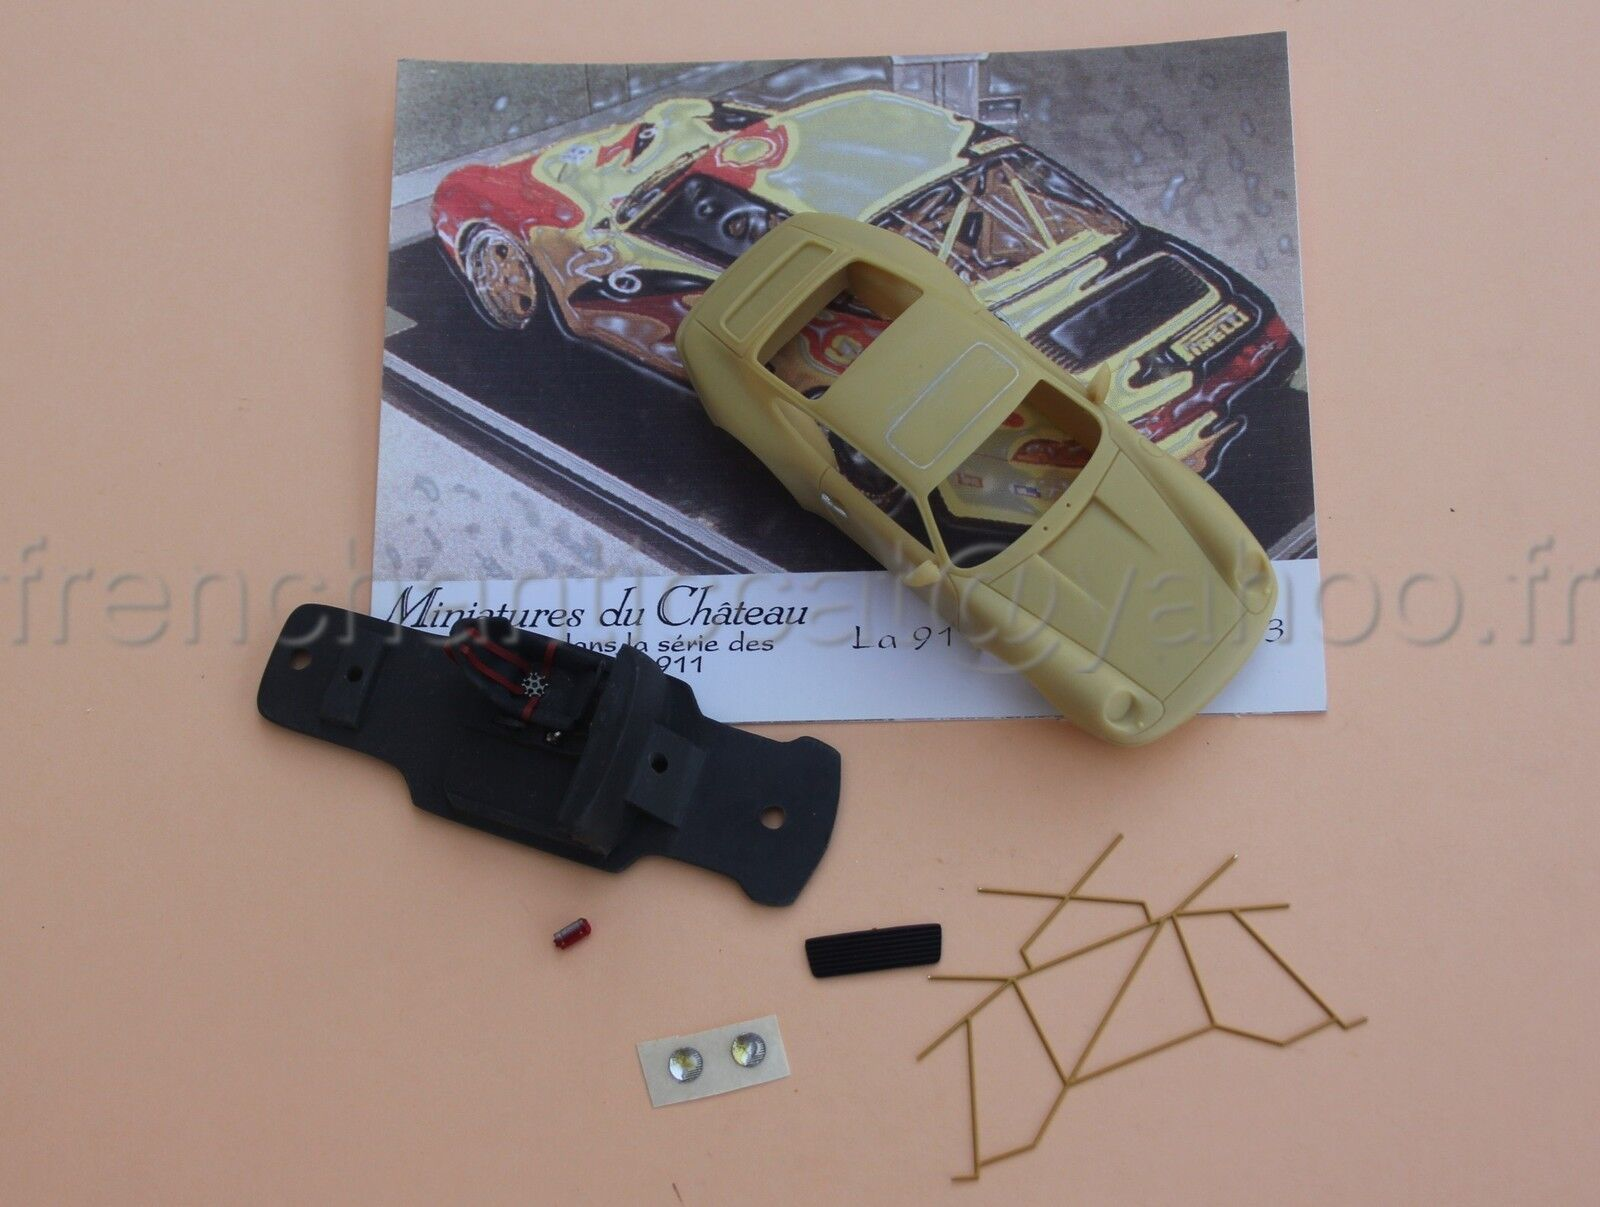 CR' Voiture PORSCHE 911 super Cup 1993 1 43 Heco miniatures Chateau